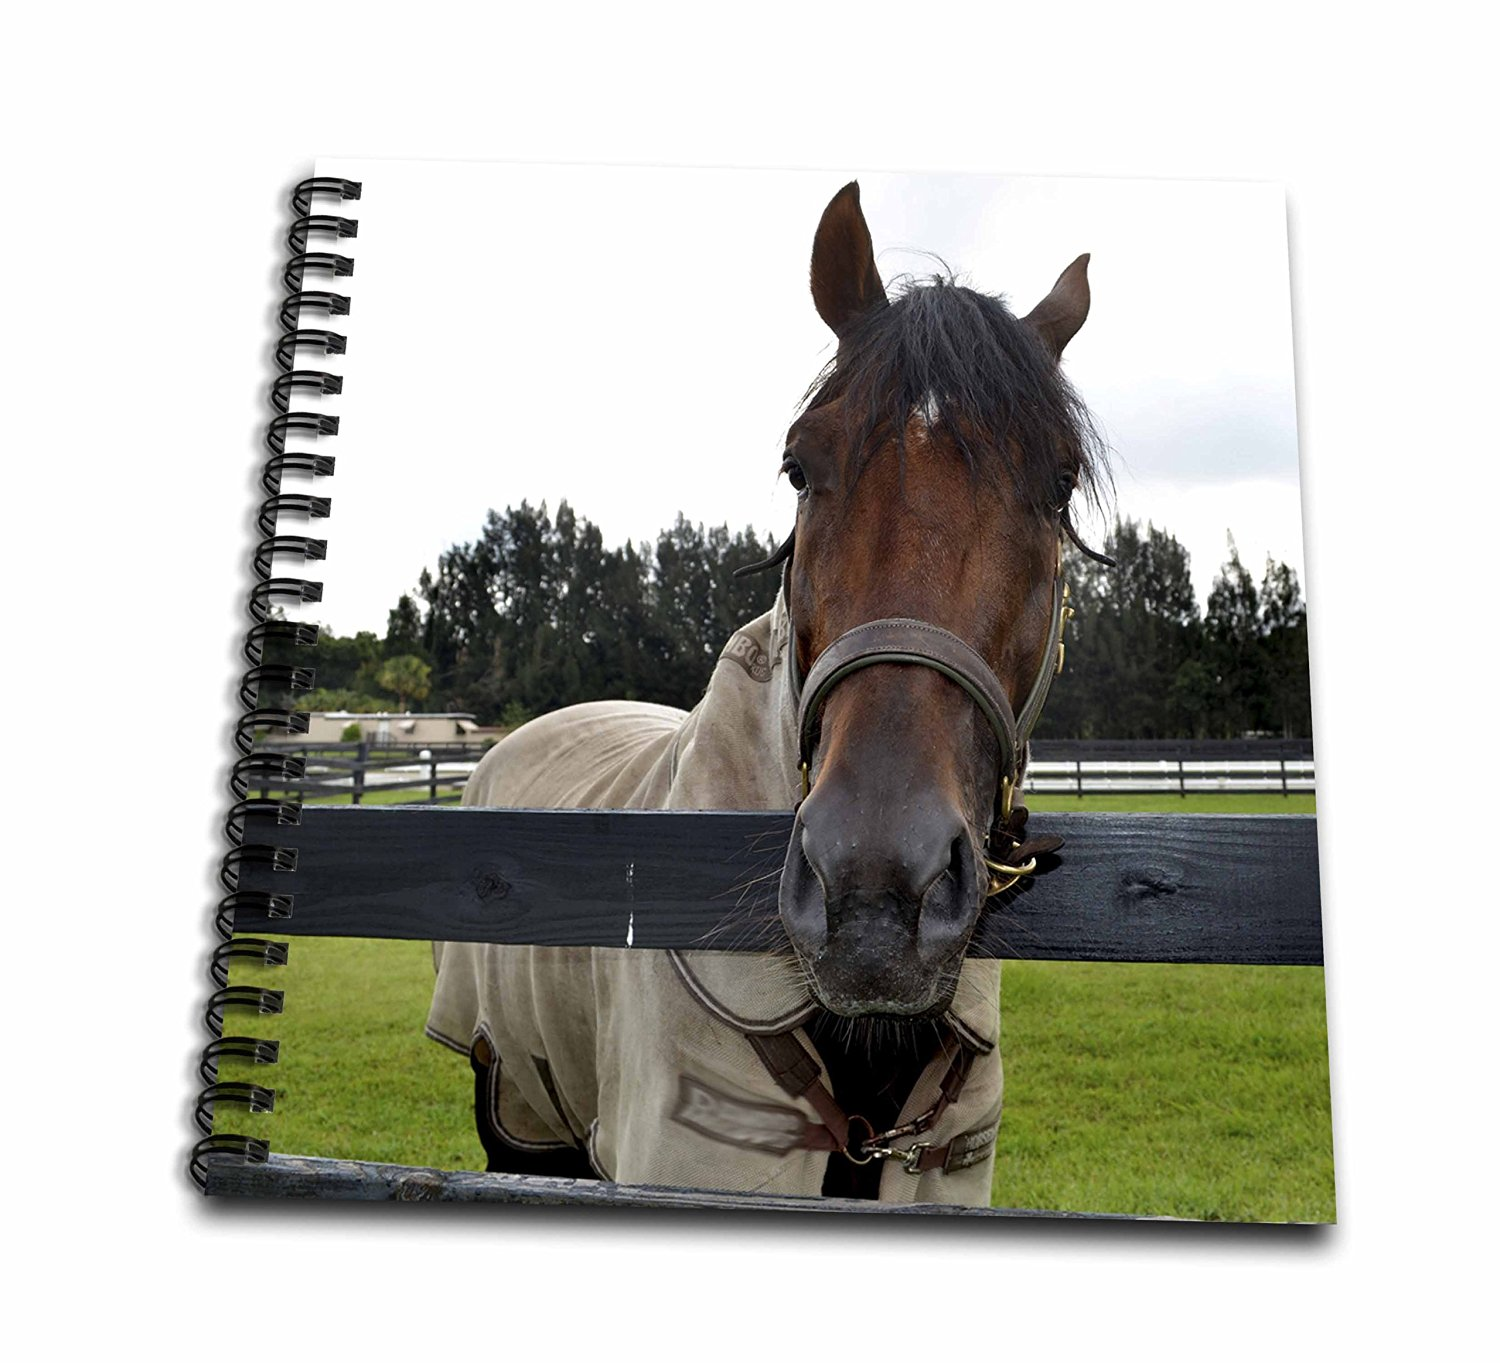 Susans Zoo Crew Animal Horse - Horse head over fence head on - Memory Book 12 x 12 inch (db_196161_2)